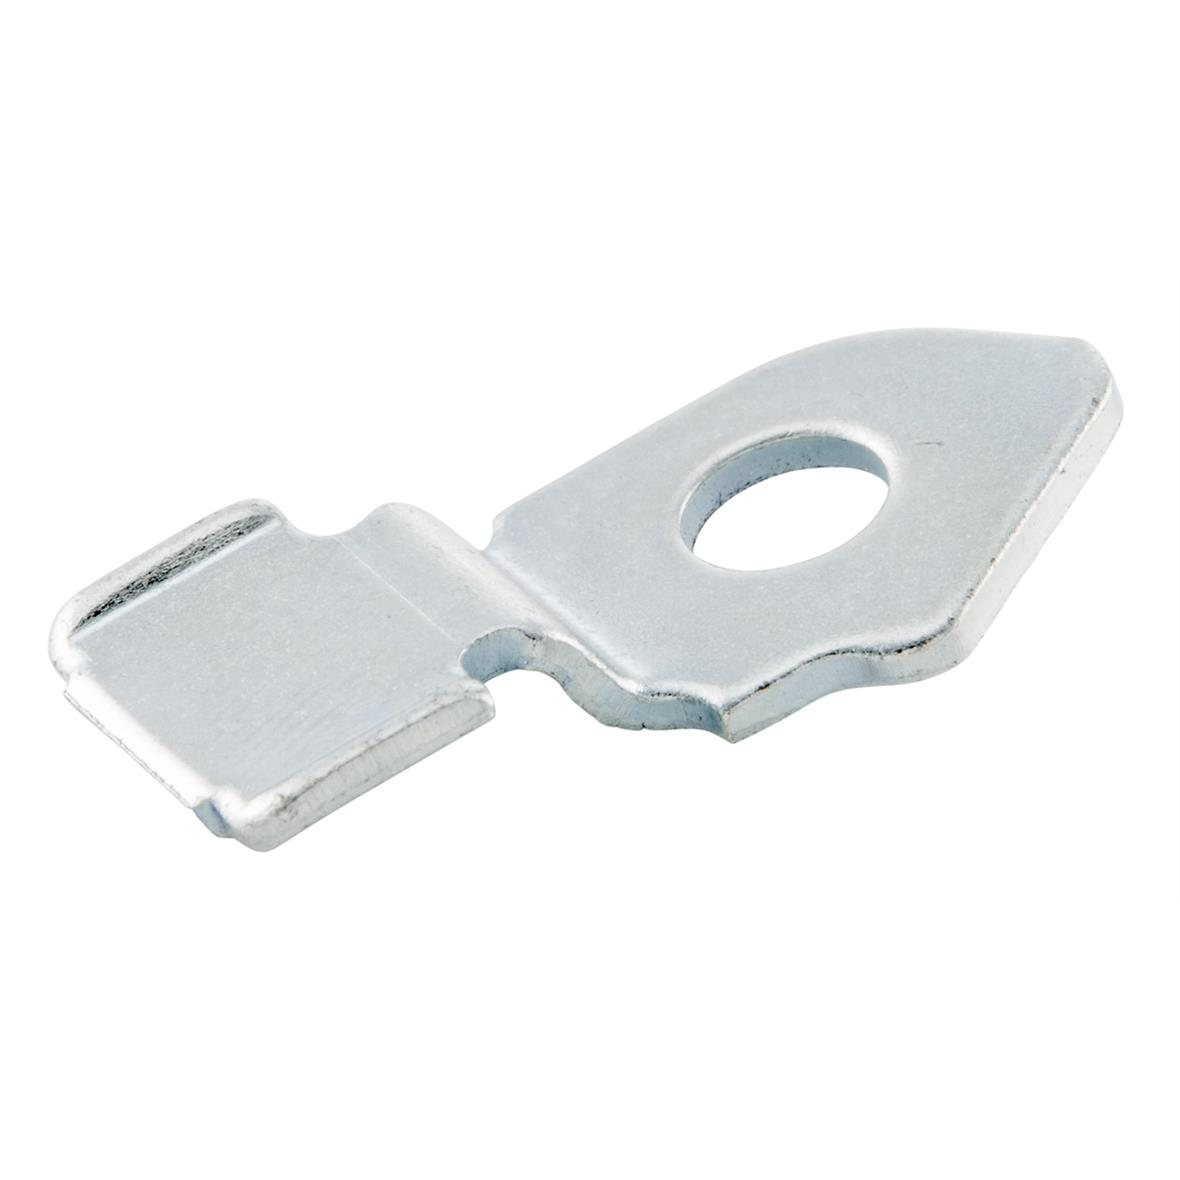 Product image for 'Retaining Plate PIAGGIO starter pinionTitle'